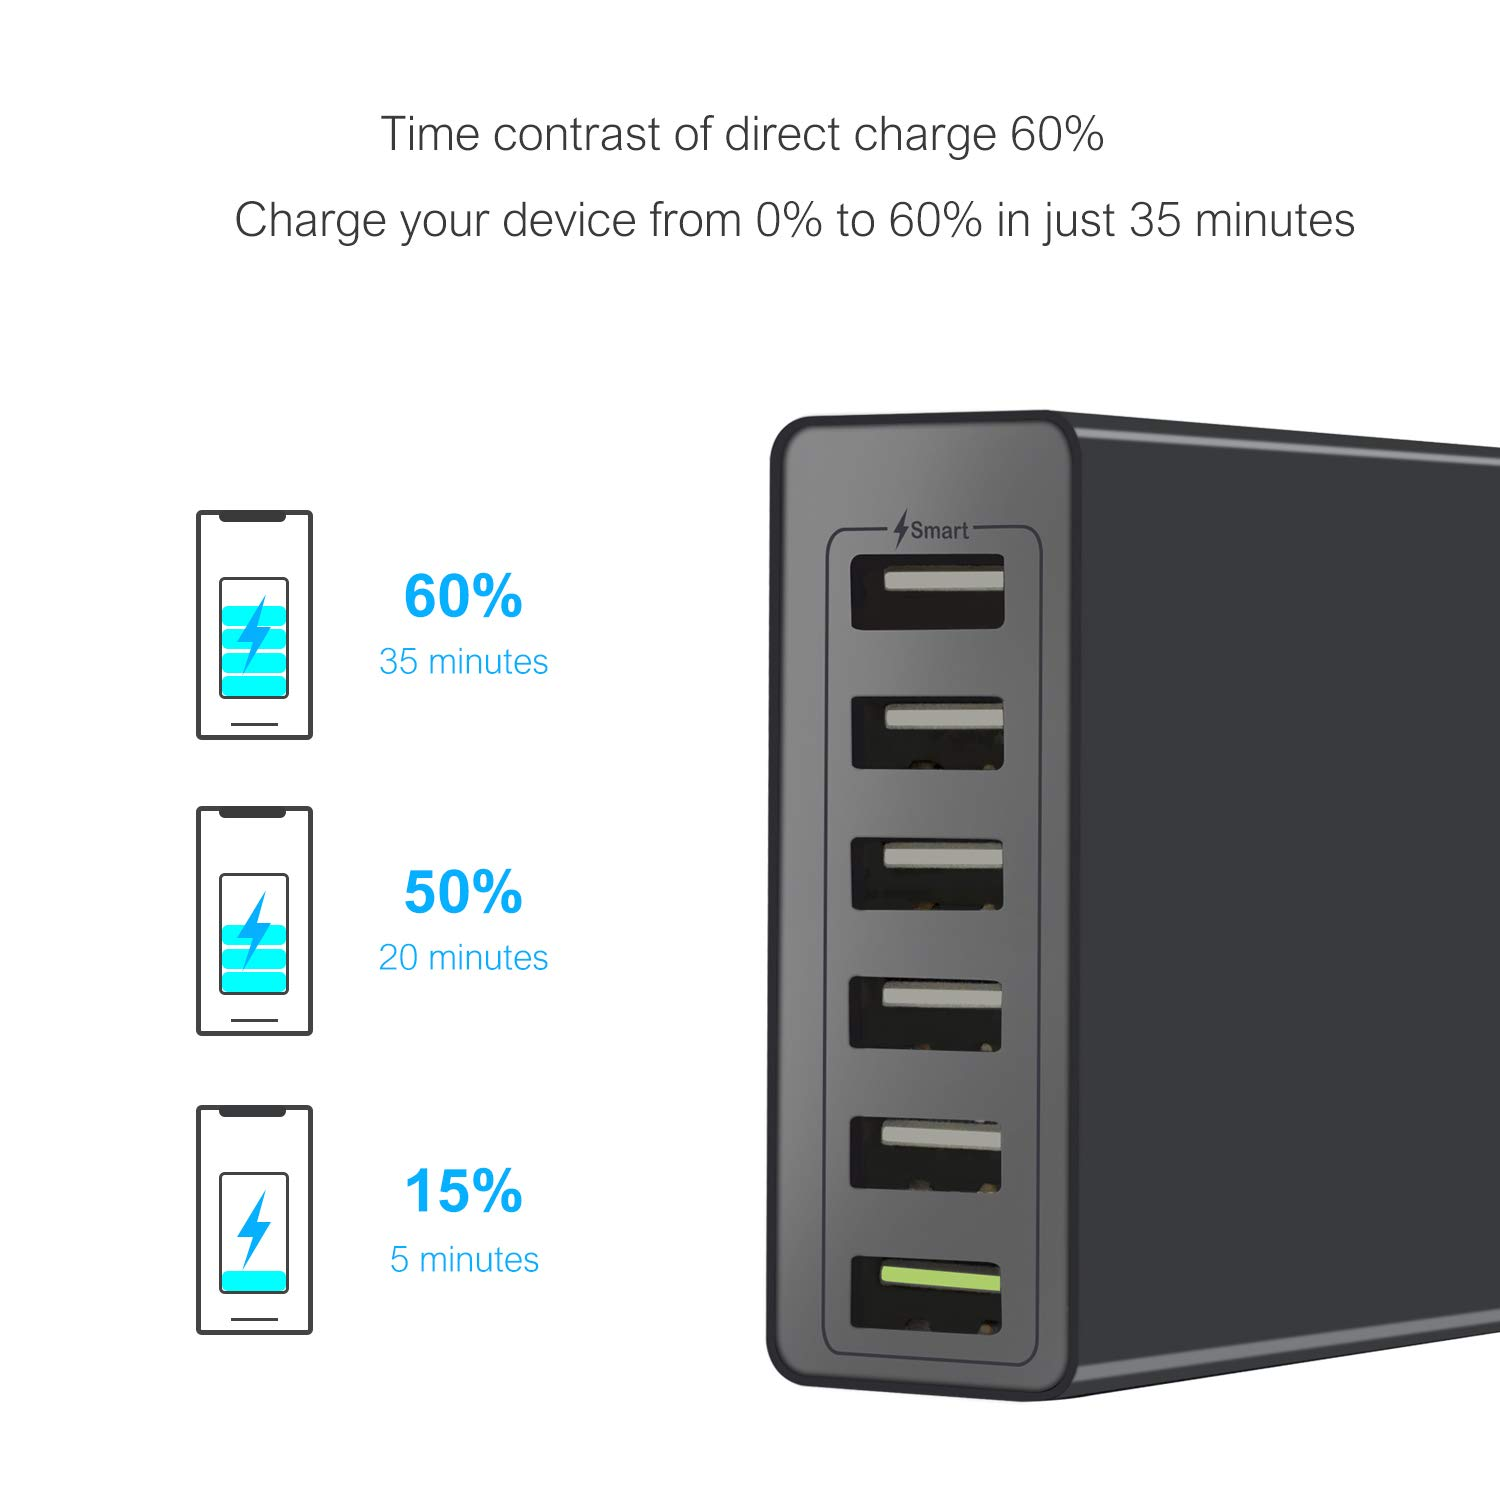 XINKSD Quick Charge 3 0 60W 6-Port USB Wall Charger, PowerPort+ 6 for  Galaxy S9/S8/S7/S6/Edge/Plus, Note 5/4 and PowerIQ for iPhone  XR/X/8/7/6s/Plus,